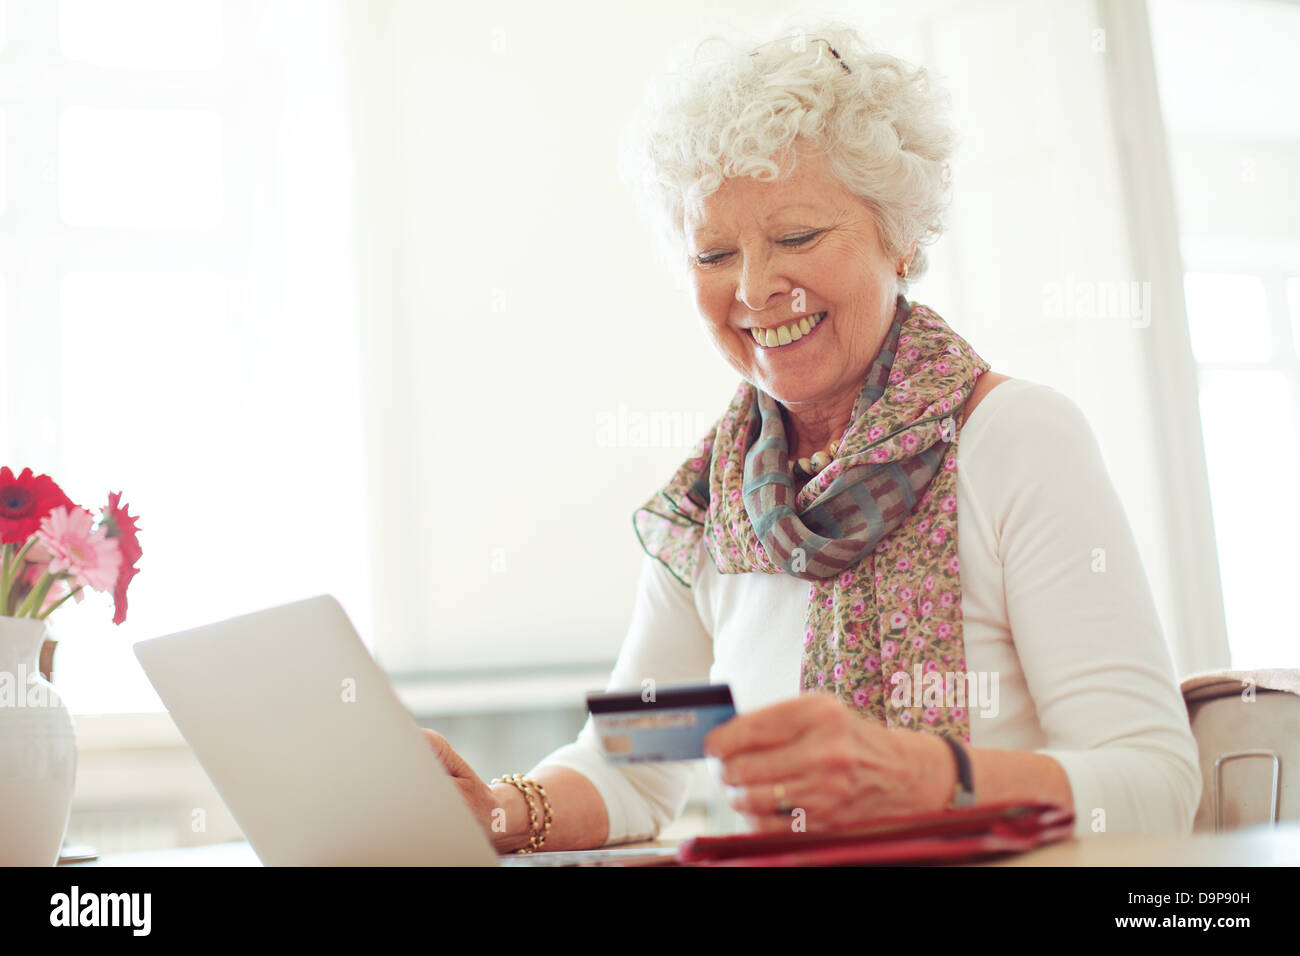 Old woman happy doing her shopping online using a credit card - Stock Image